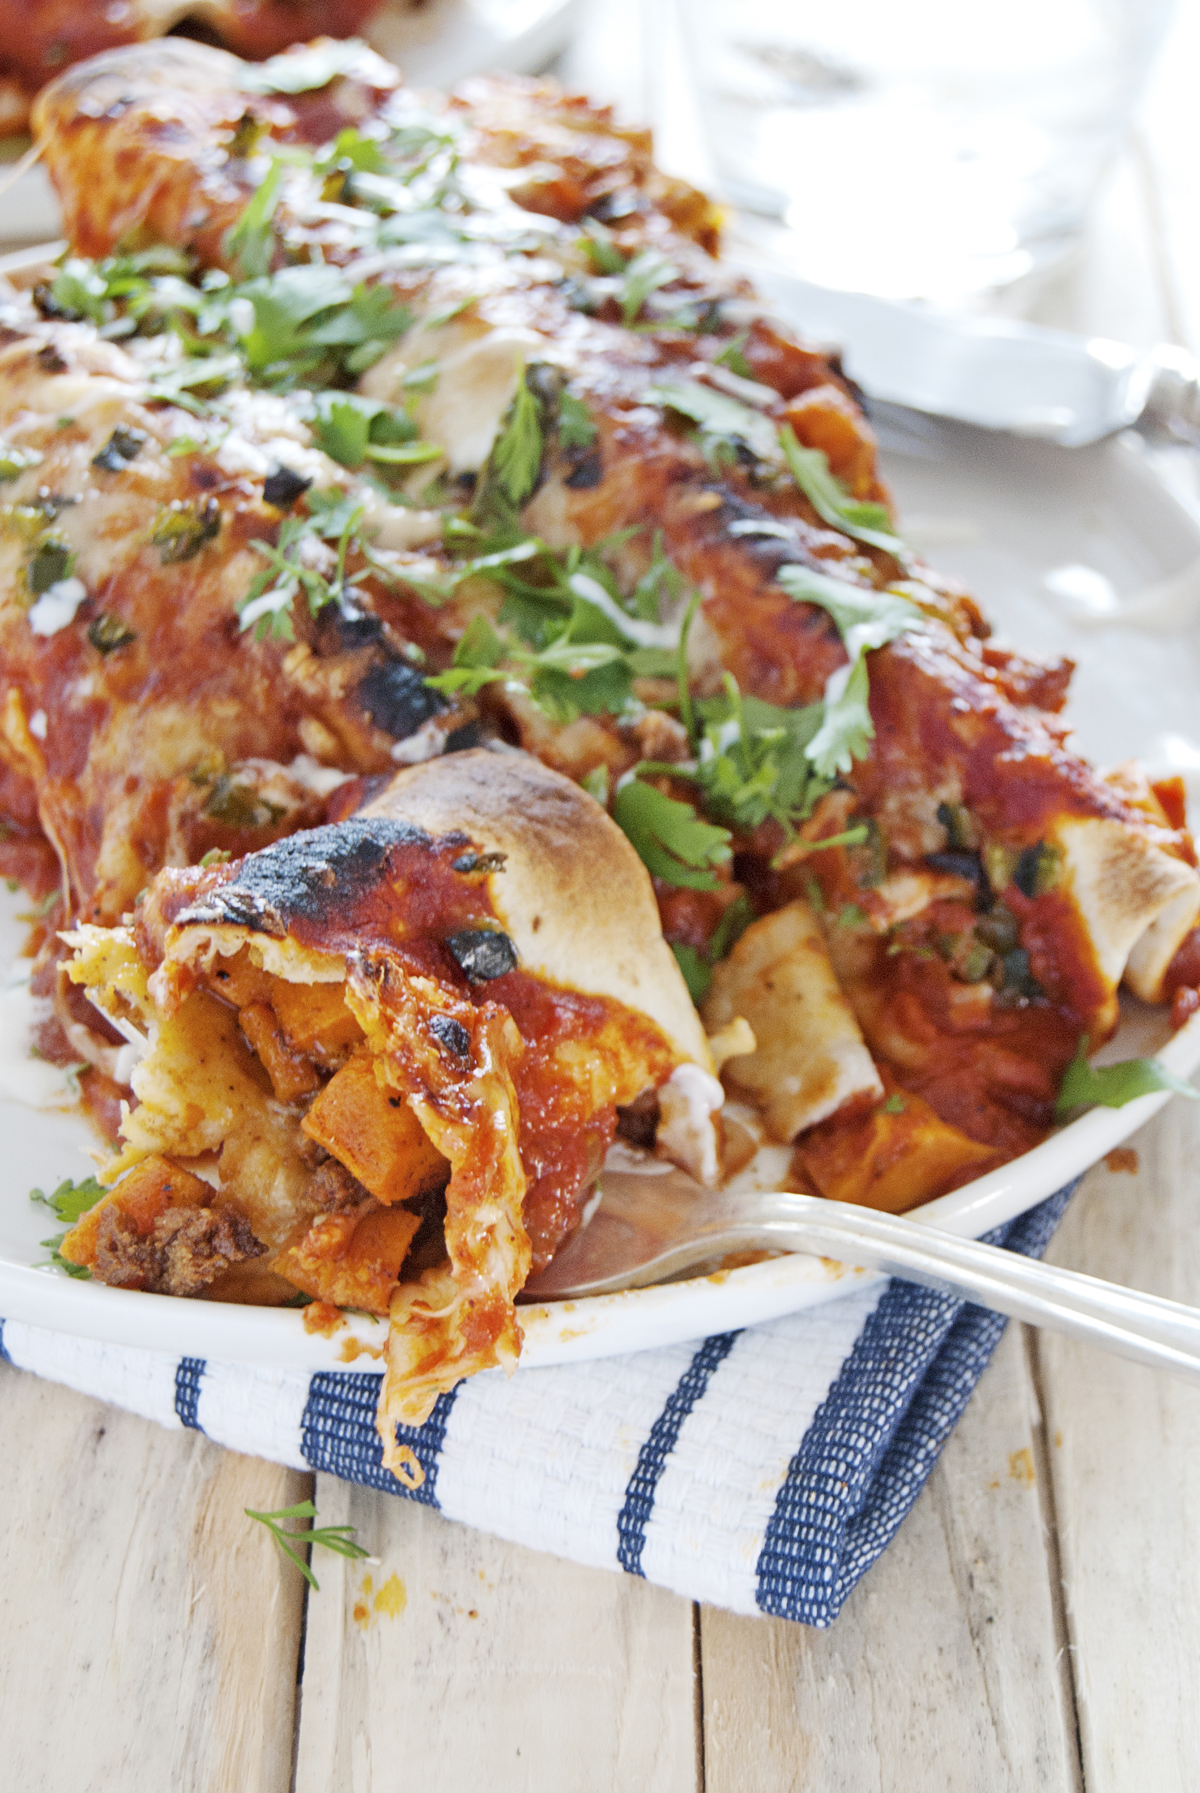 These tasty chorizo and sweet potato enchiladas feature creamy fontina cheese, homemade red enchilada sauce, and roasted poblano peppers.